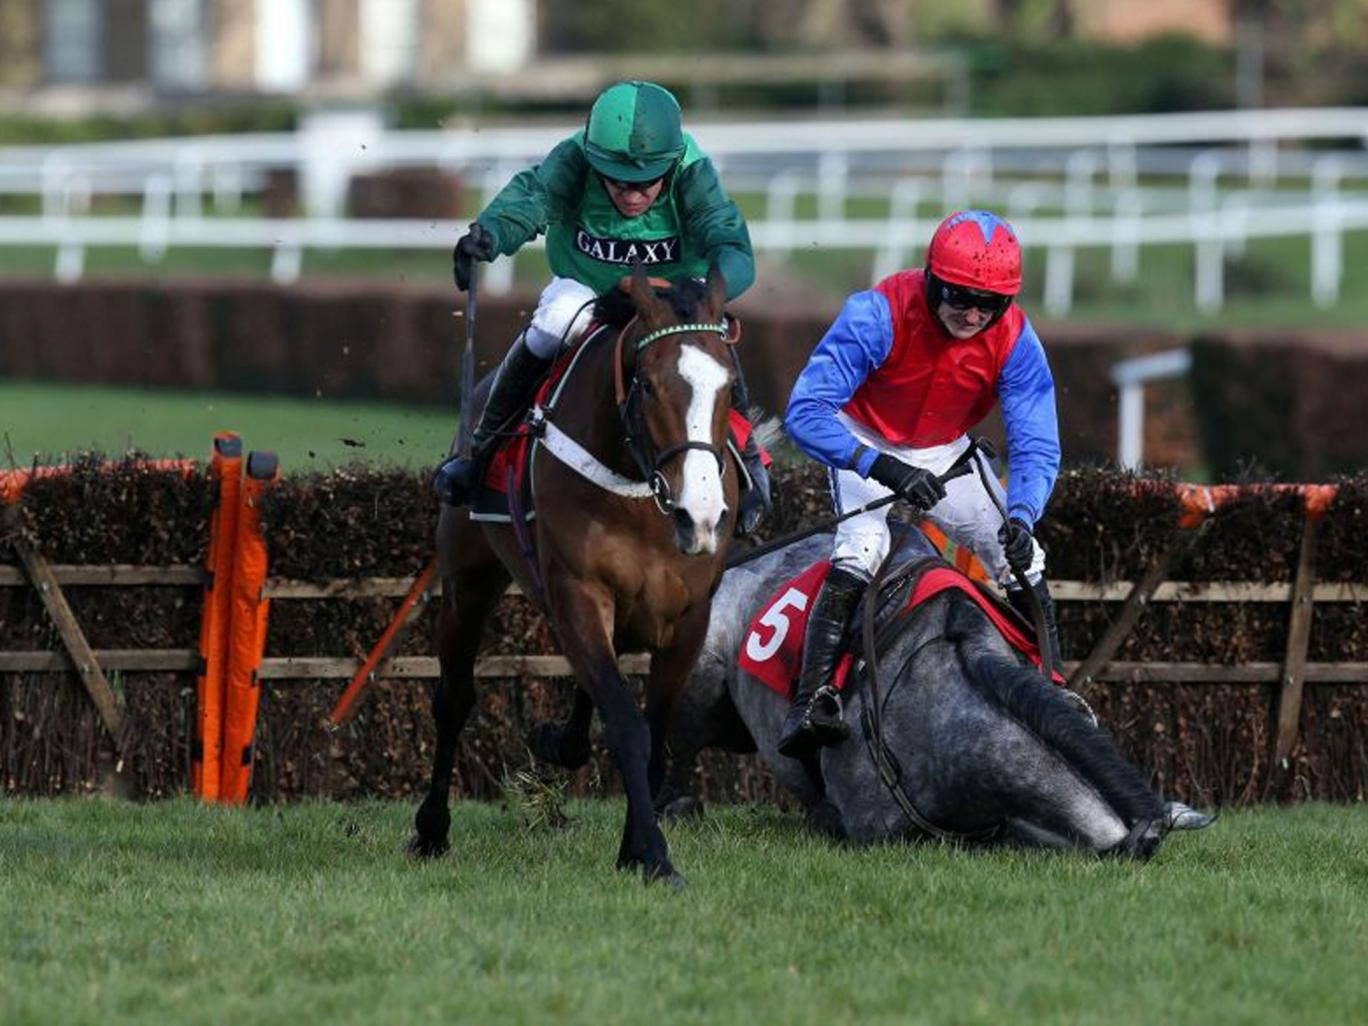 Utopies des Bordes (left) on her way to victory at Sandown yesterday